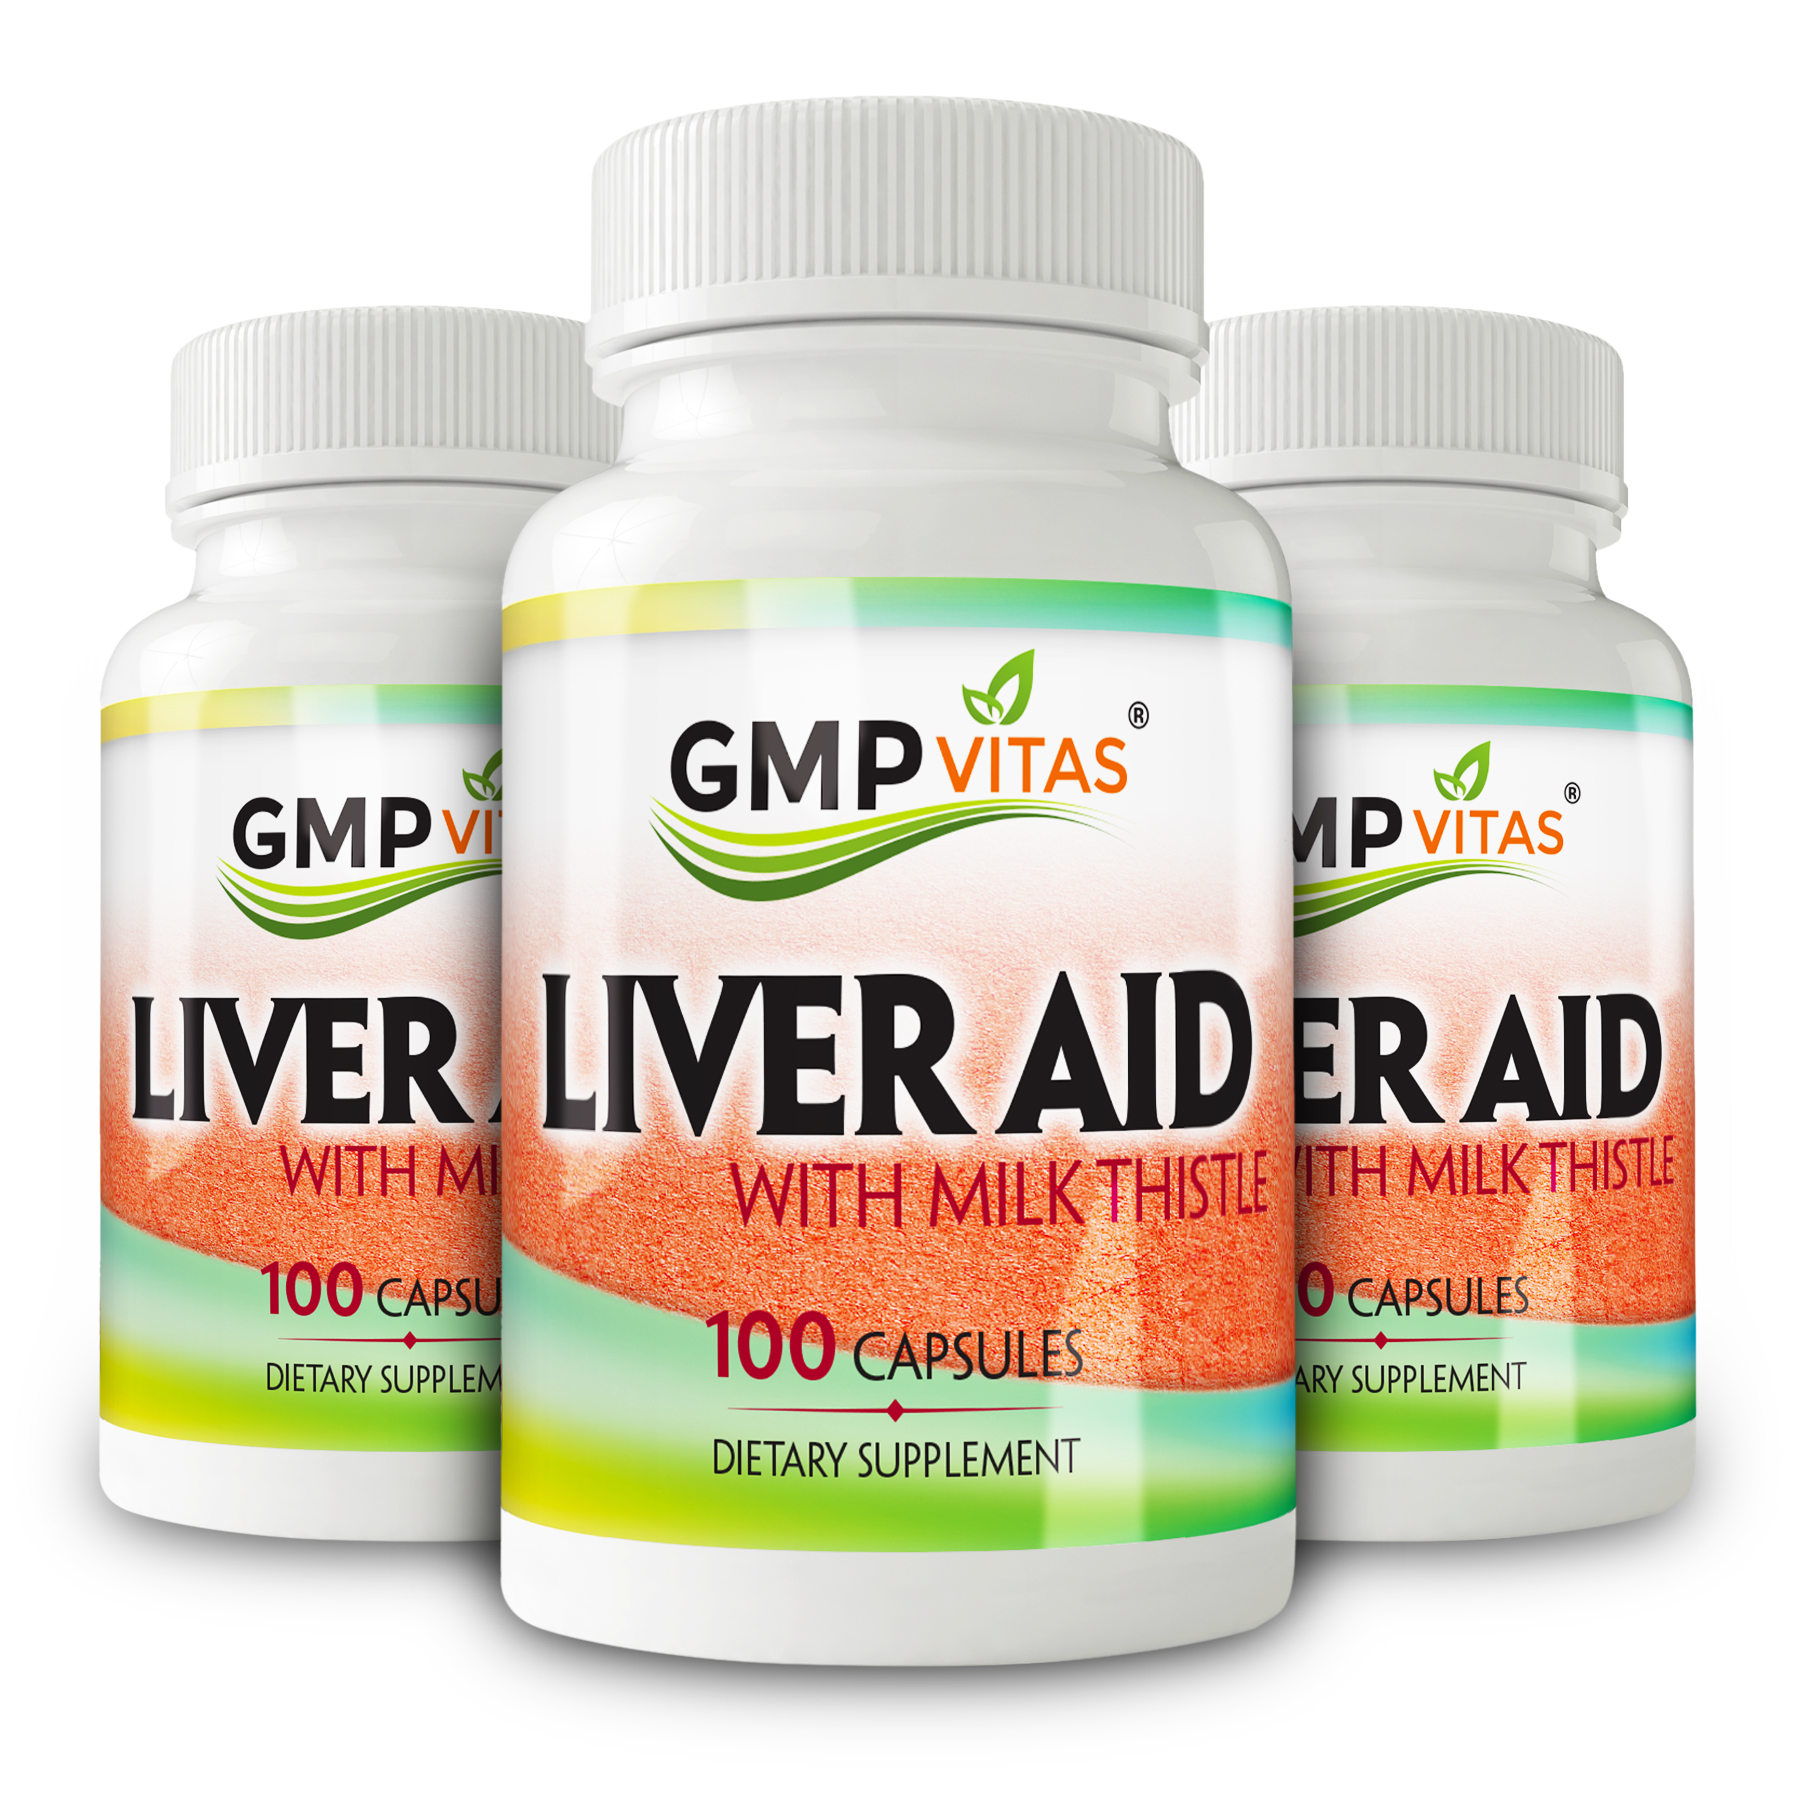 Super Liver Aid With Milk Thistle Bundle (GMP Vitas® Liver Aid With Milk Thistle 100 Capsules X 3)